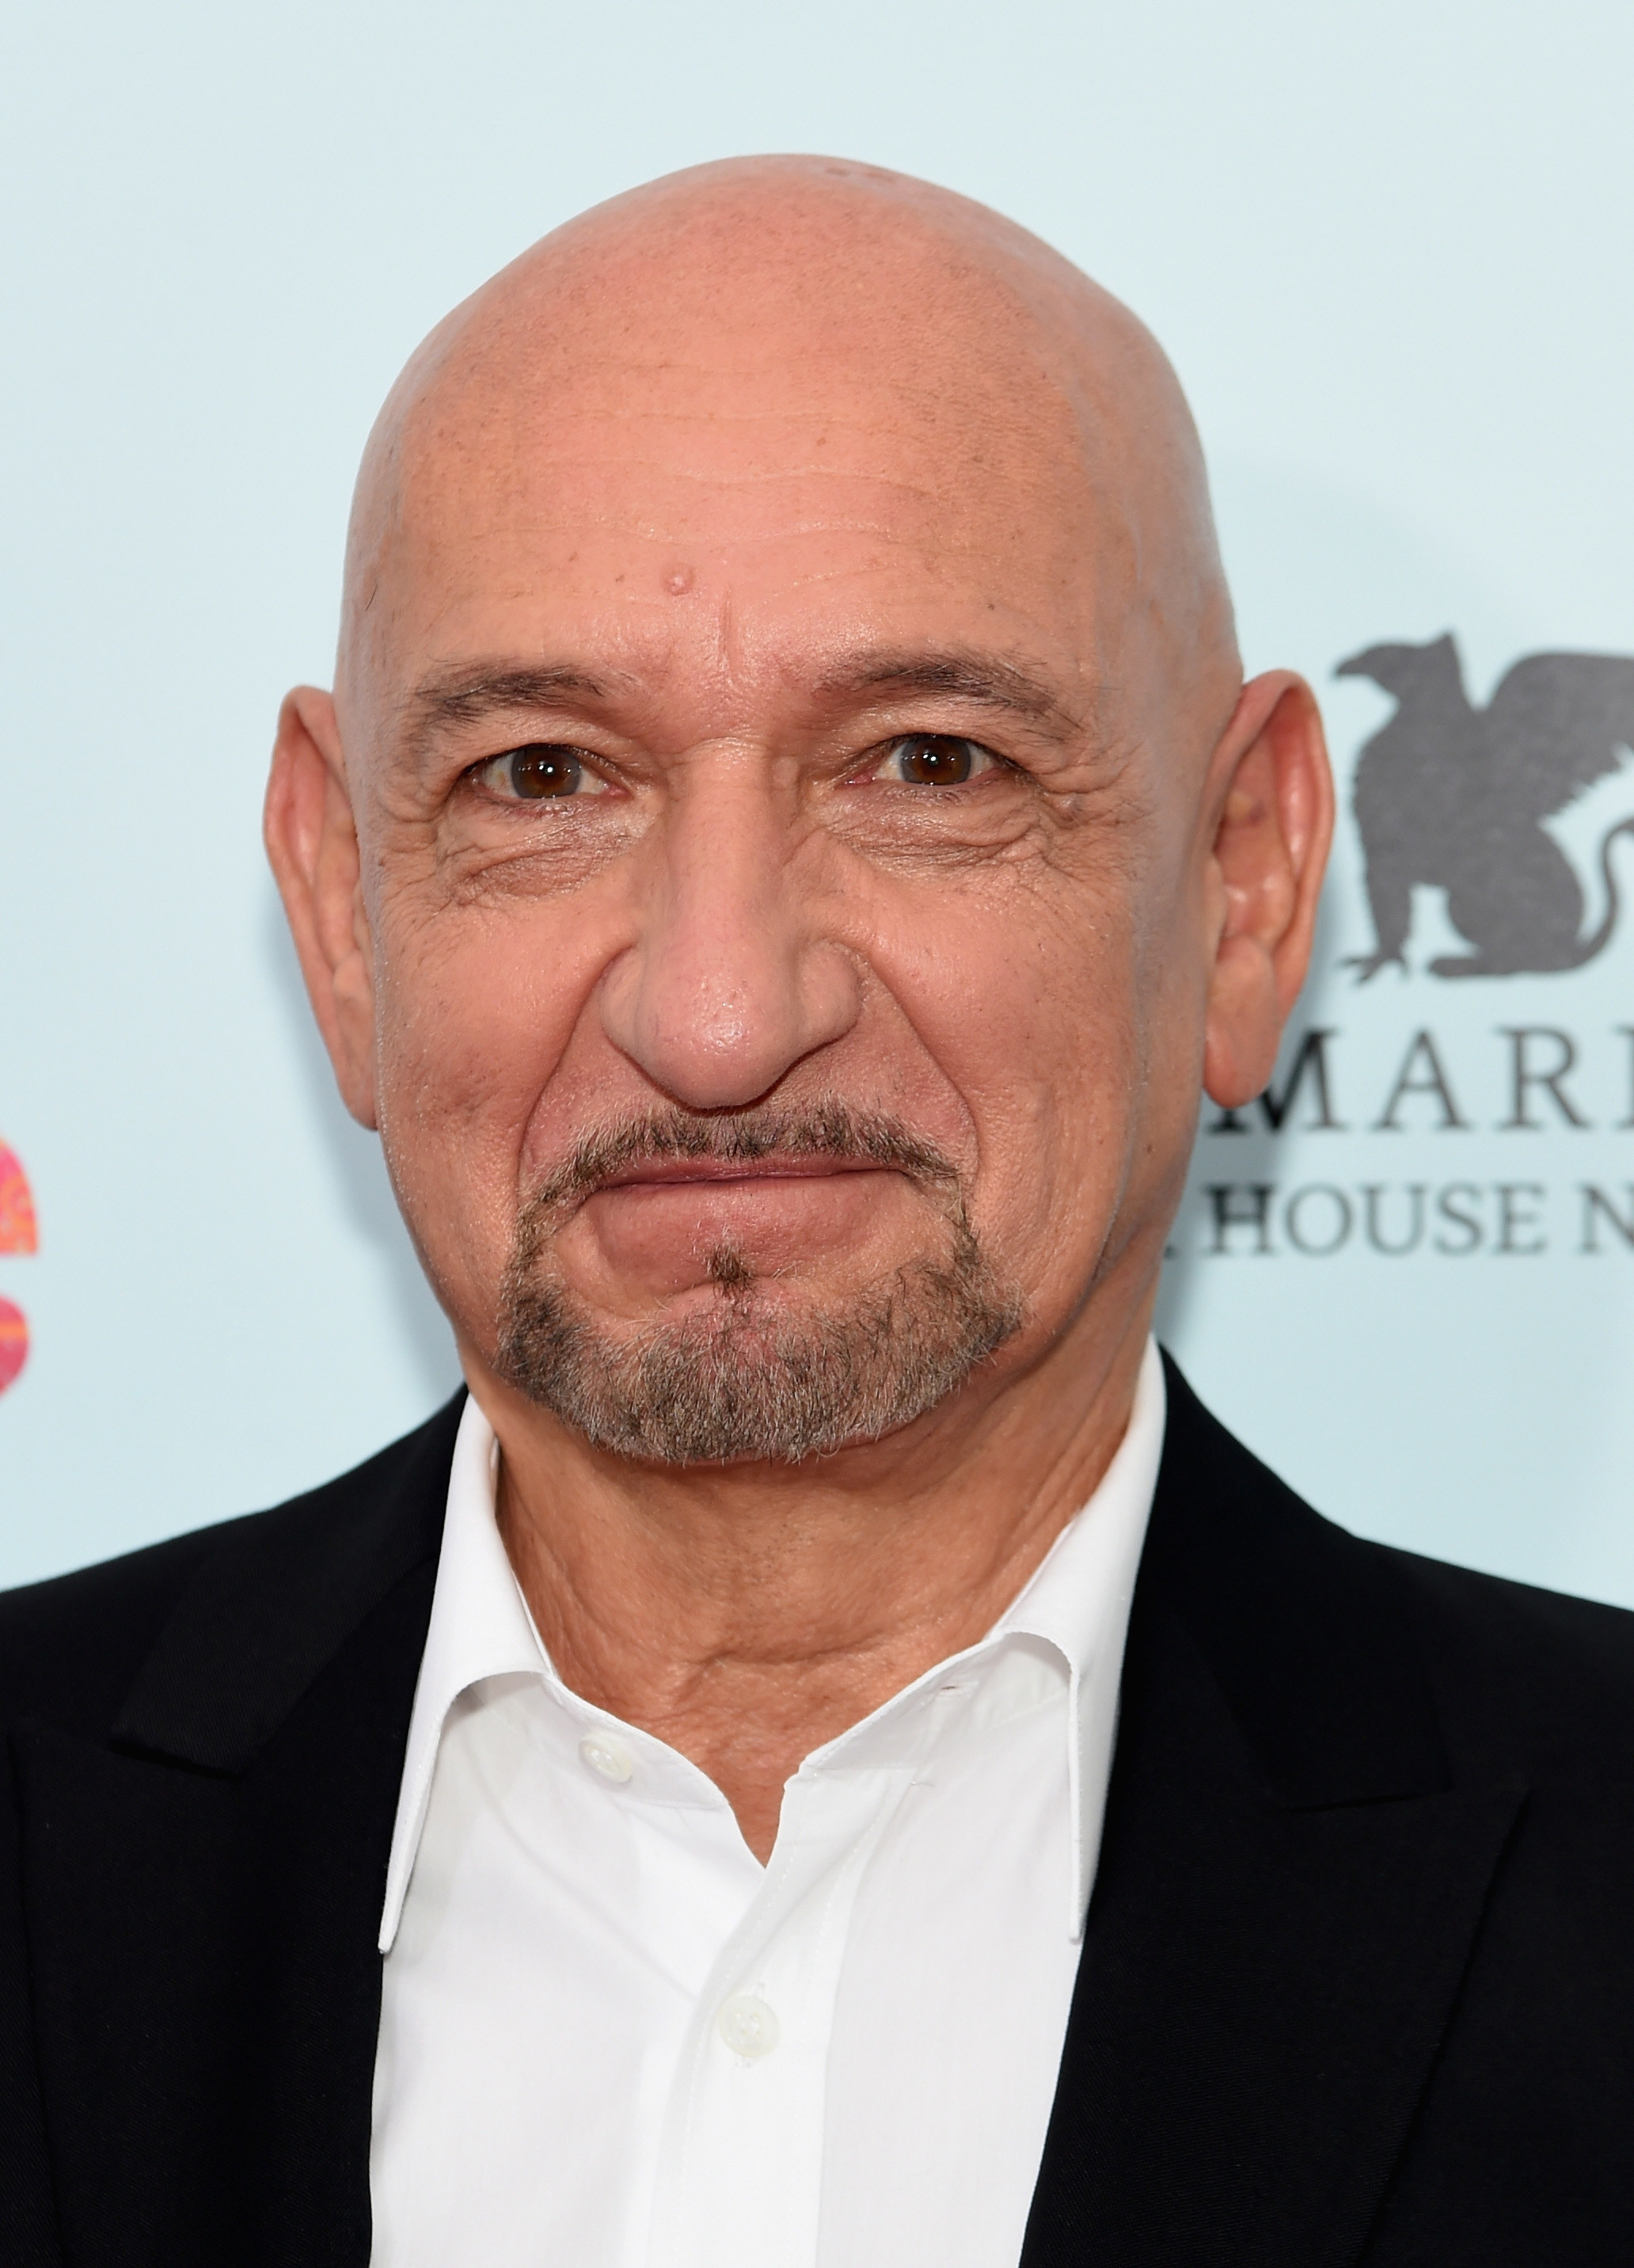 Ben Kingsley wears a white dress shirt with a collarless suit jacket as he smiles at the camera